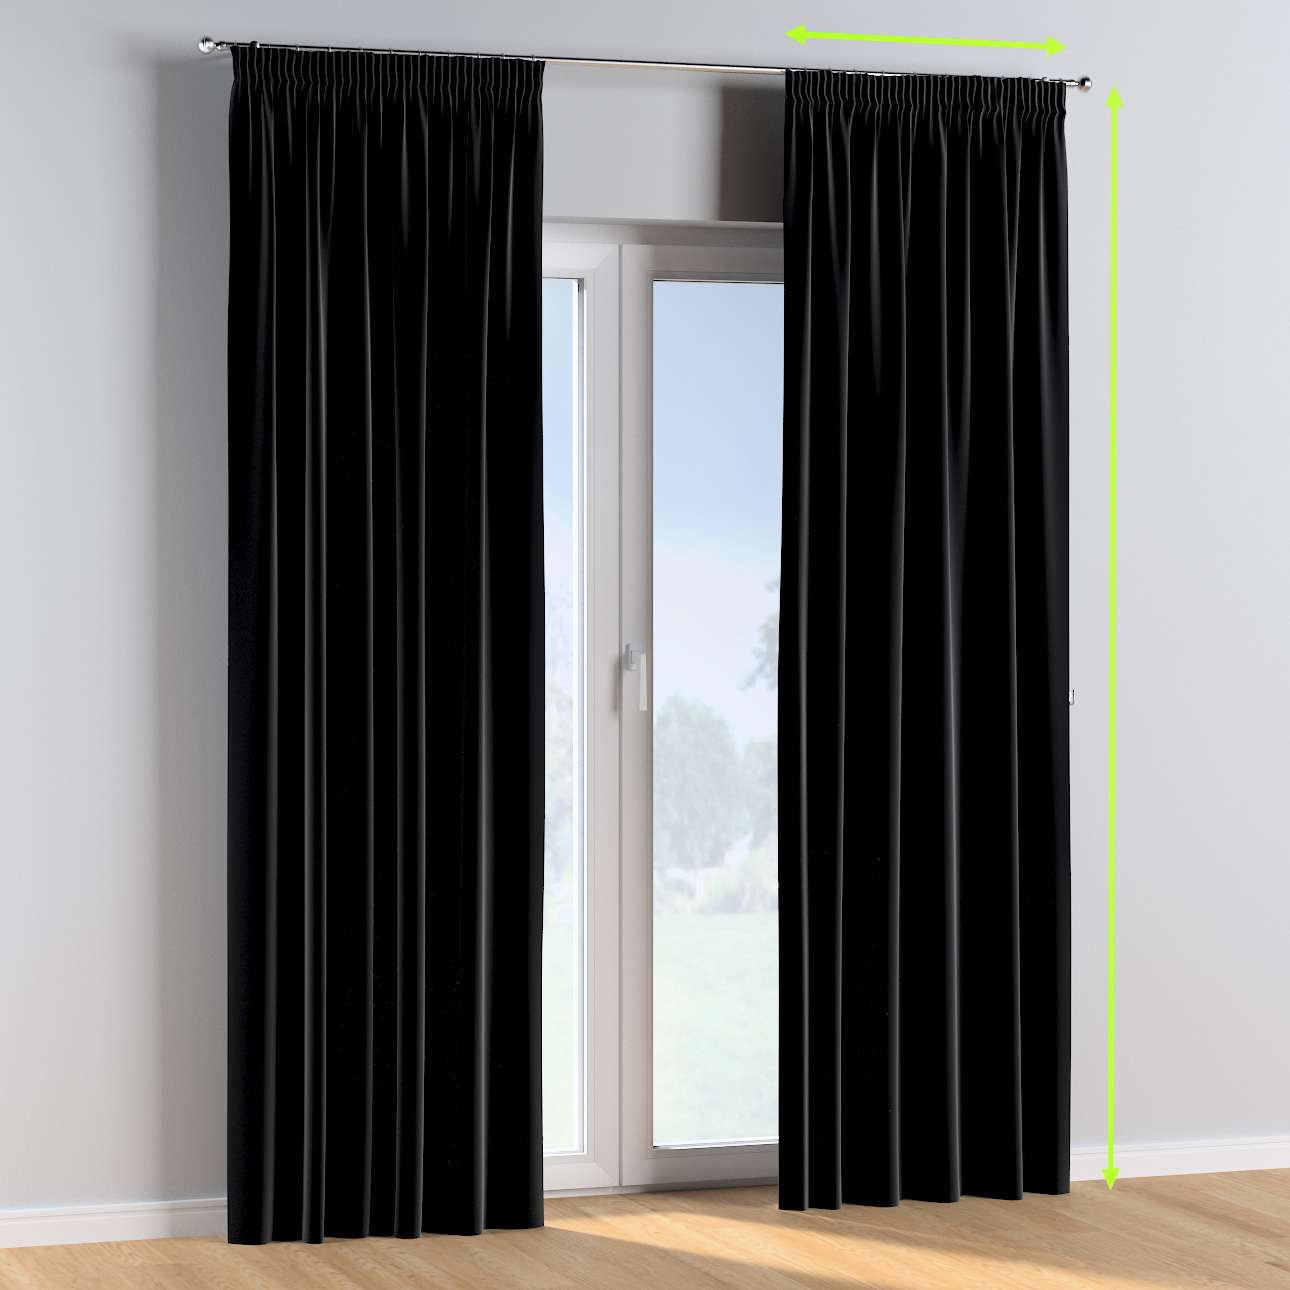 Pencil pleat curtains in collection Posh Velvet, fabric: 704-17